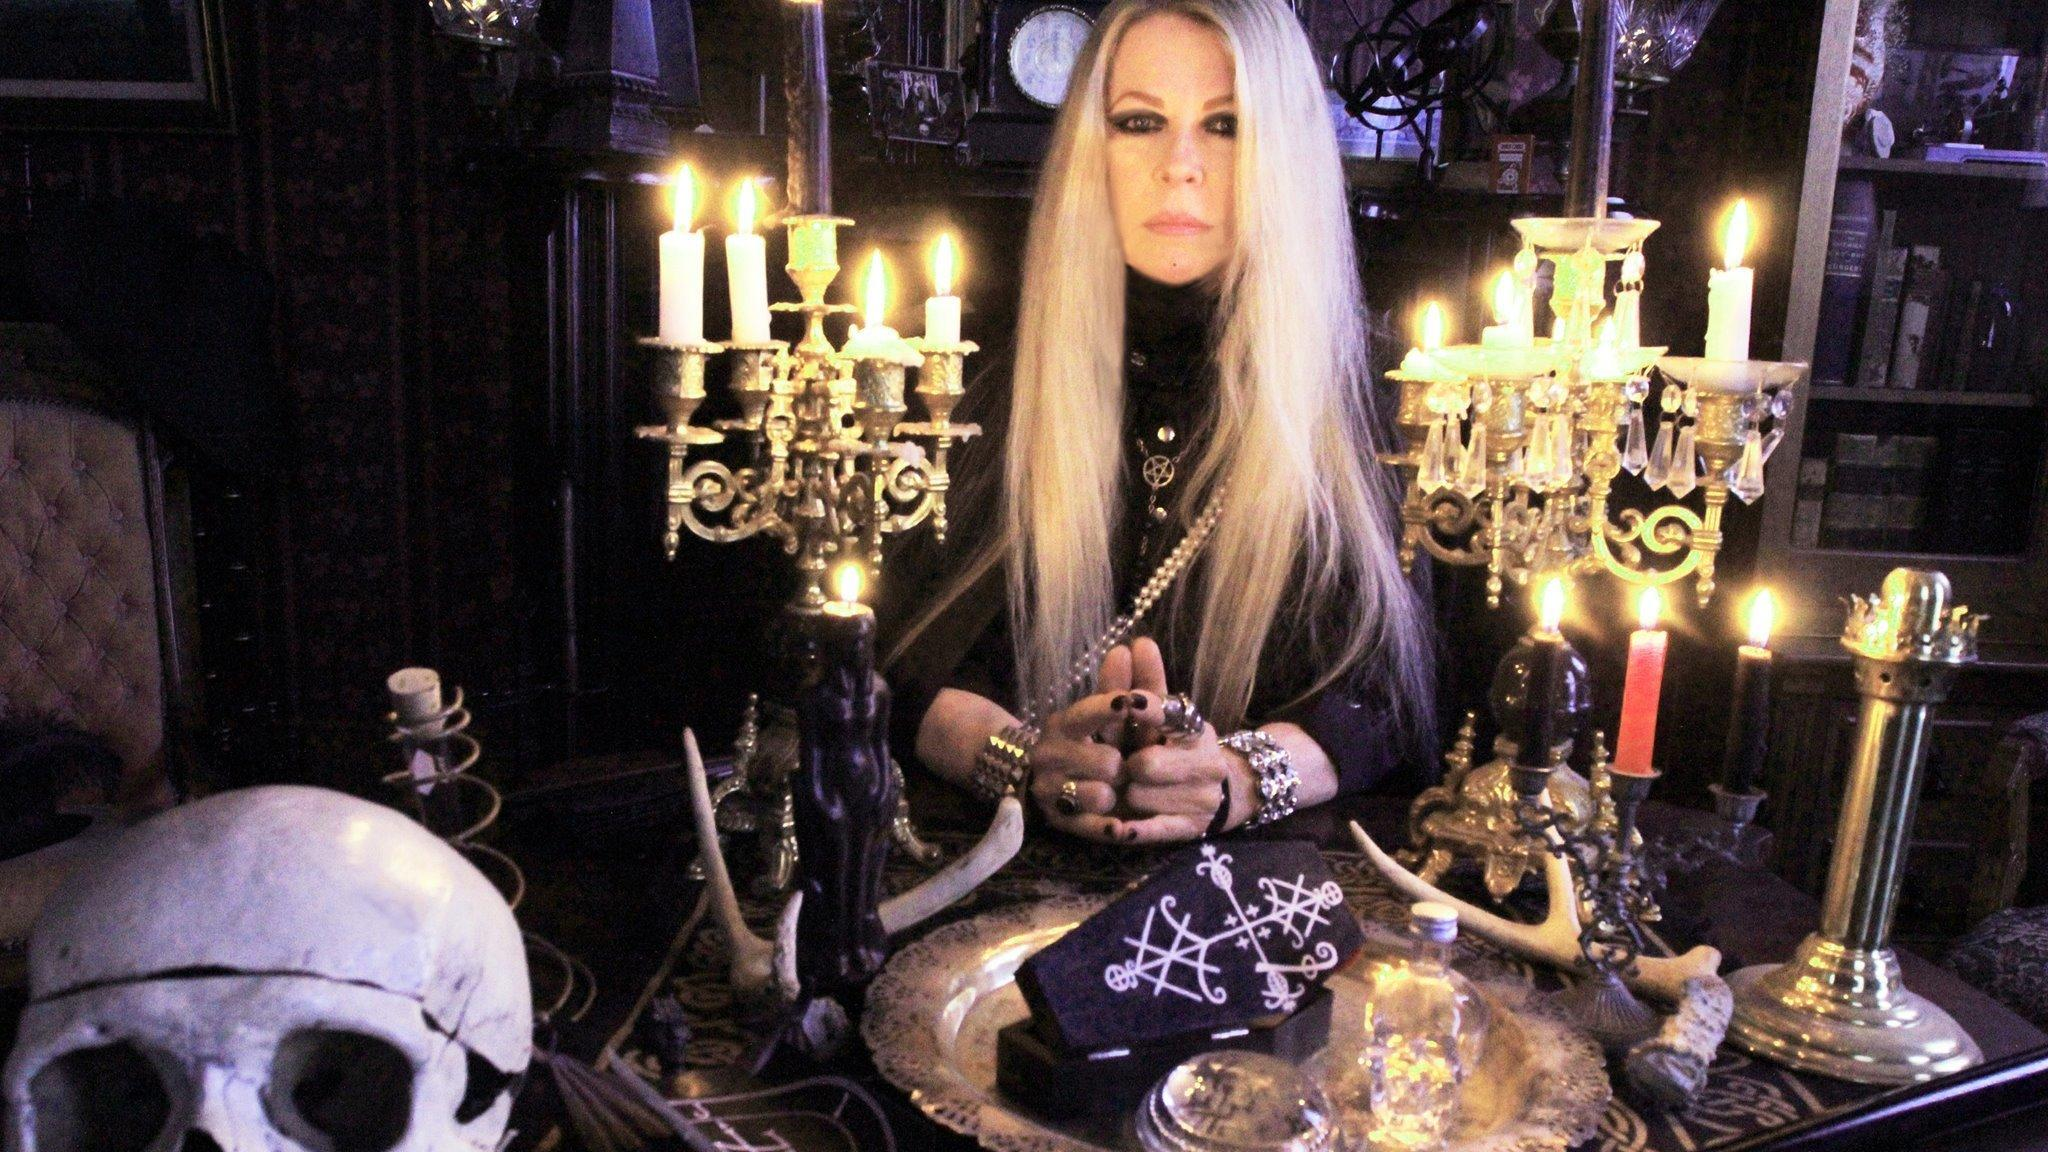 Shocking Omissions: Coven's 'Witchcraft Destroys Minds